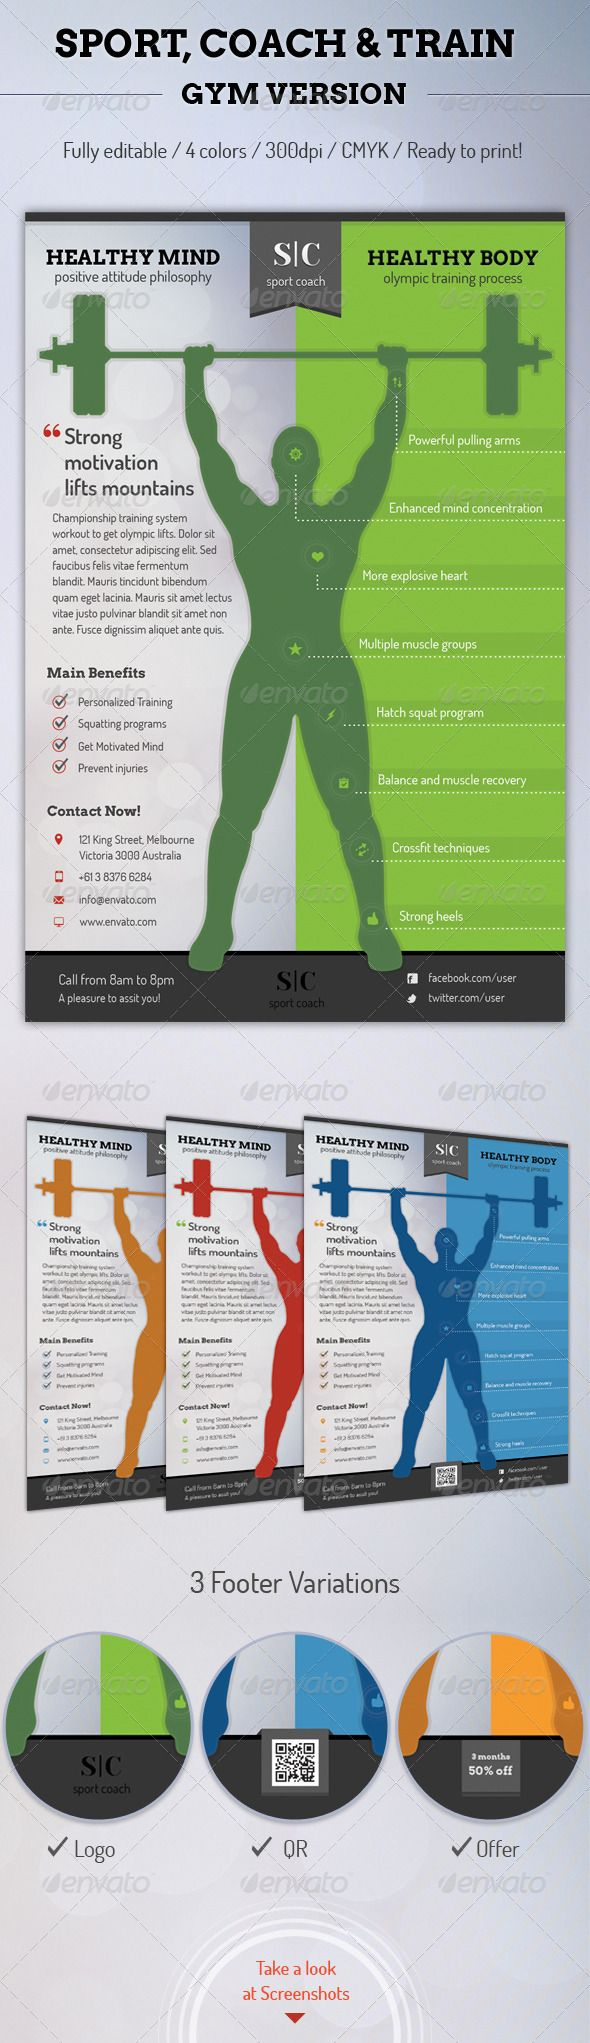 Sport Coach and Train Flyer - Gym Version by Sargatal NEW: Sport Coach and Train Flyers Bundle! http://graphicriver.net/item/sport-coach-and-train-flyers-bundle/6433104This is a profes